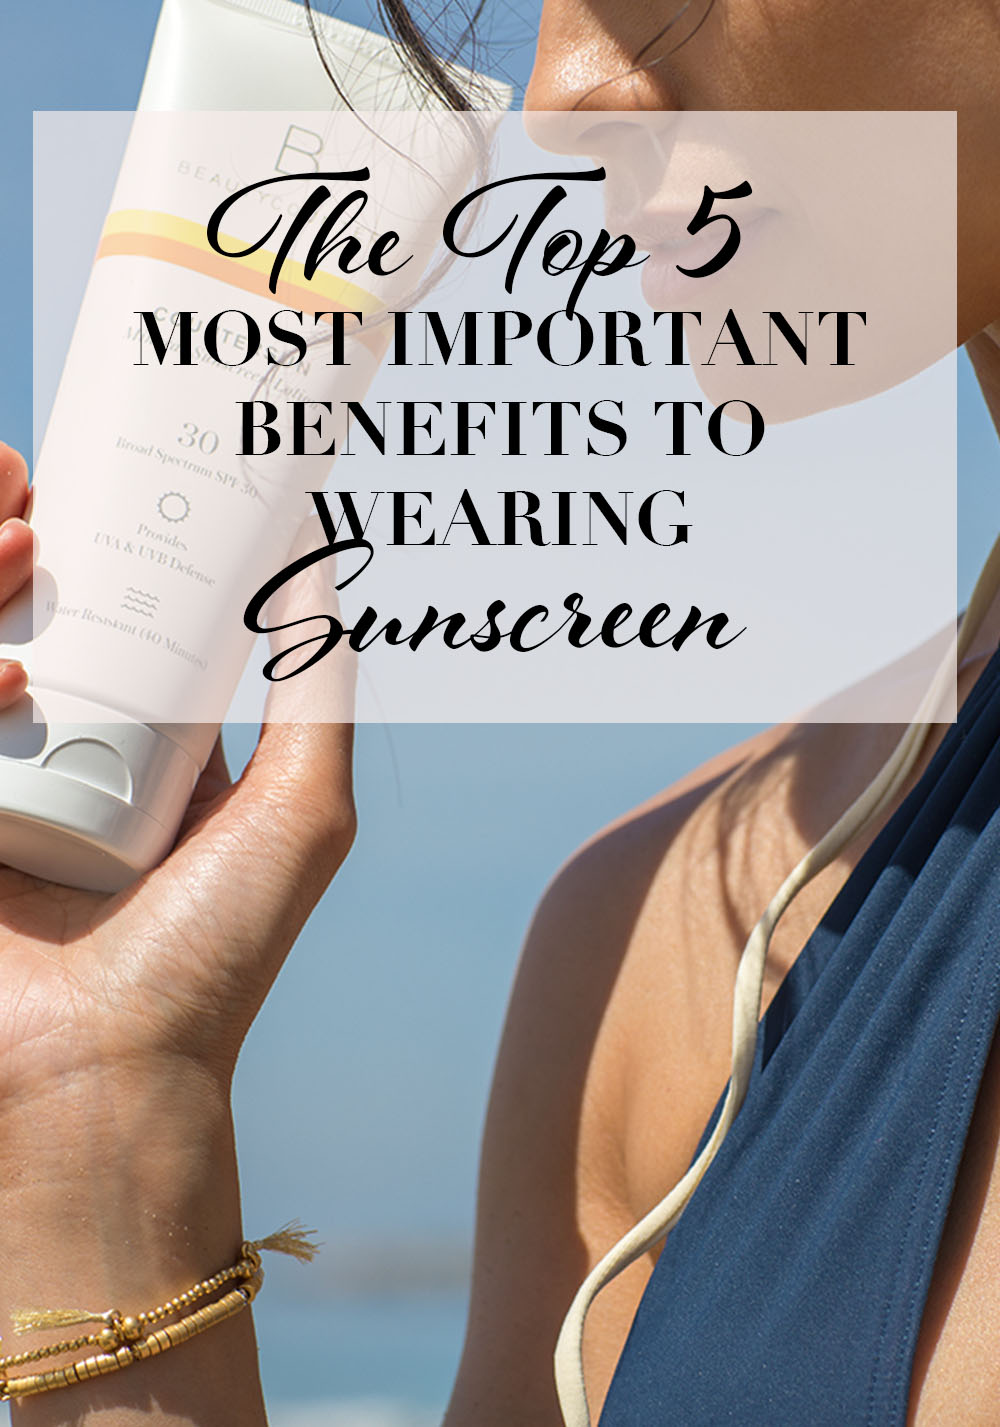 top 5 most important benefits to wearing sunscreen